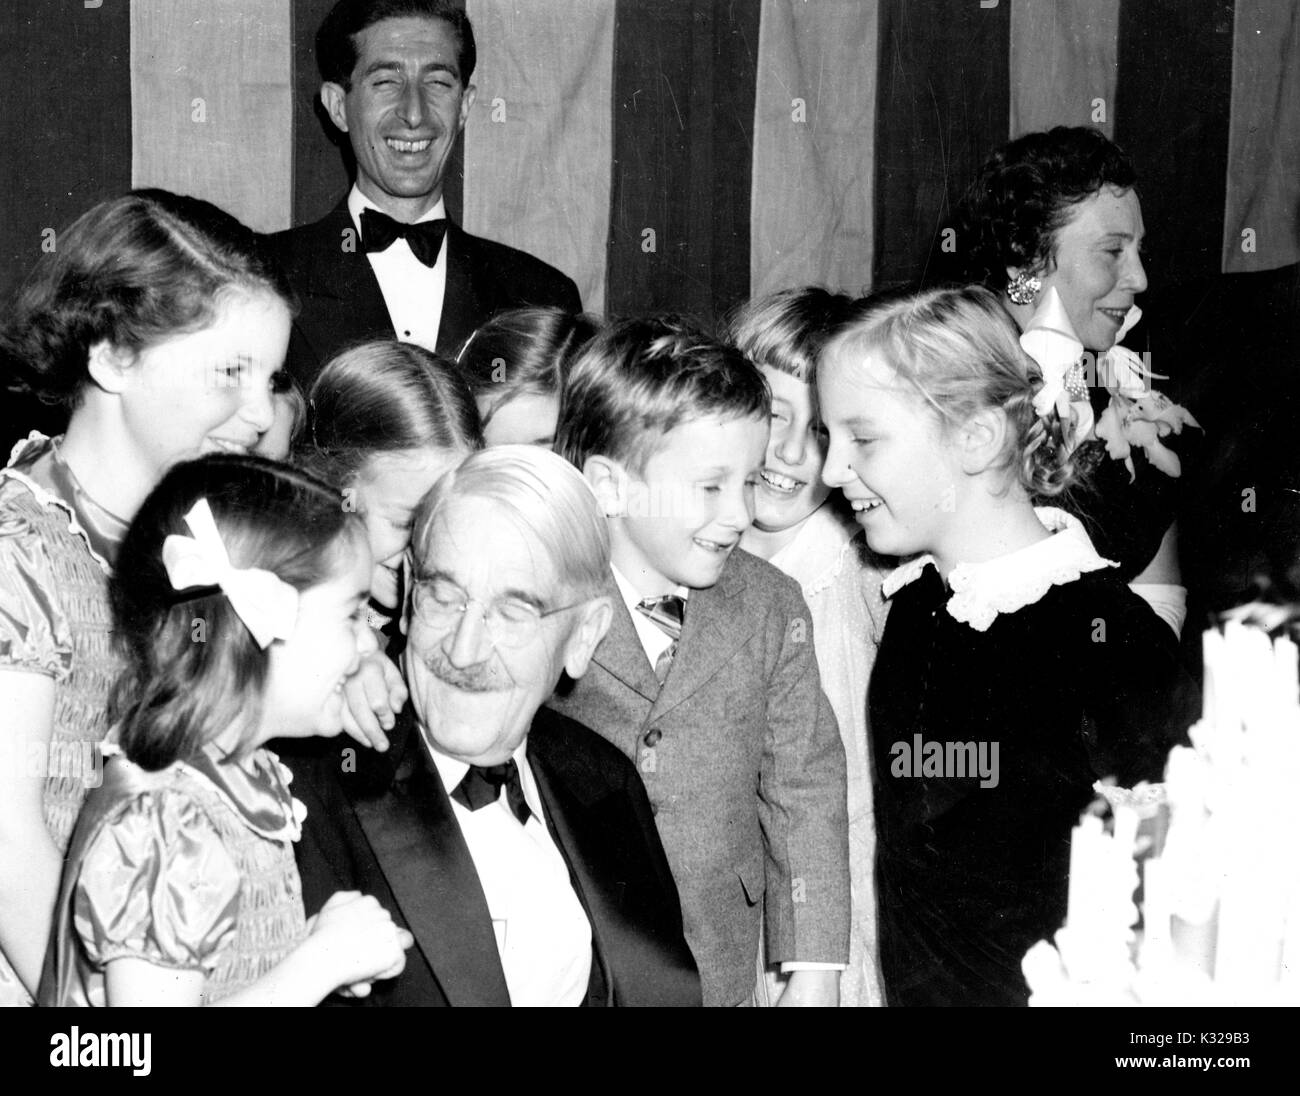 American philosopher, psychologist, and educational reformer John Dewey (front, center) is surrounded by his children, celebrating his 90th birthday, 1949. - Stock Image